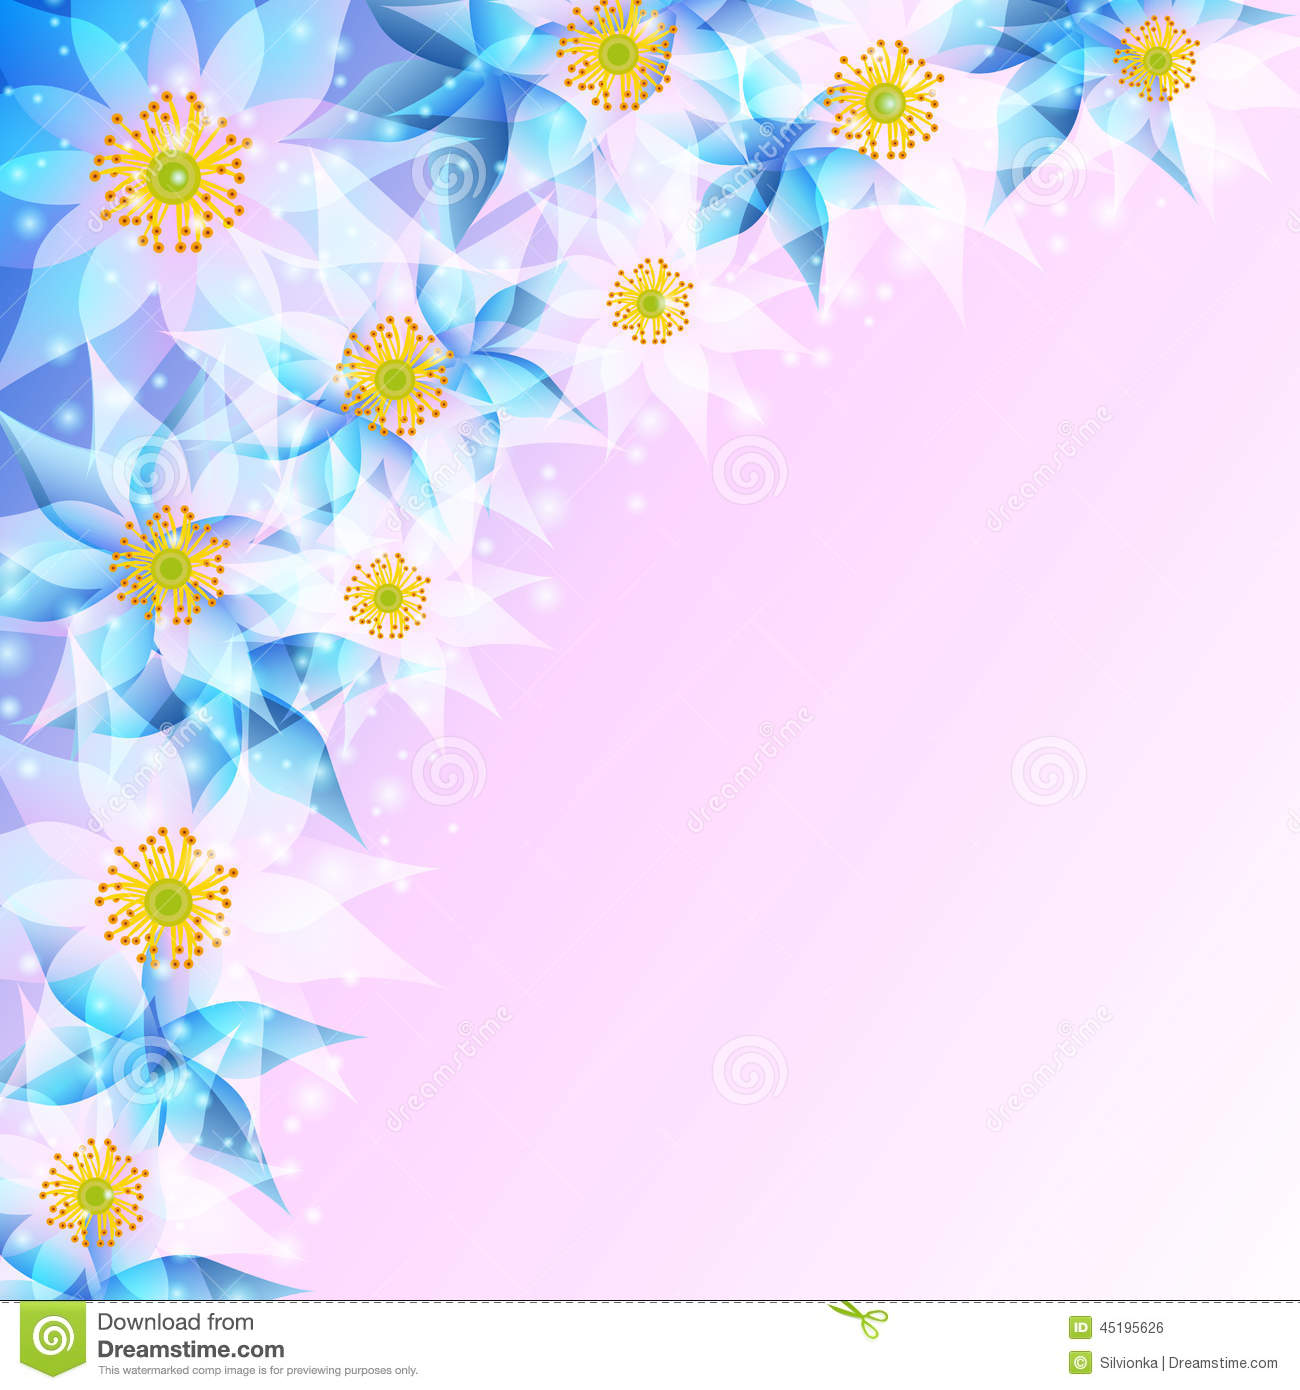 Festive Background With Abstract Flowers Stock Vector - Image: 45195626